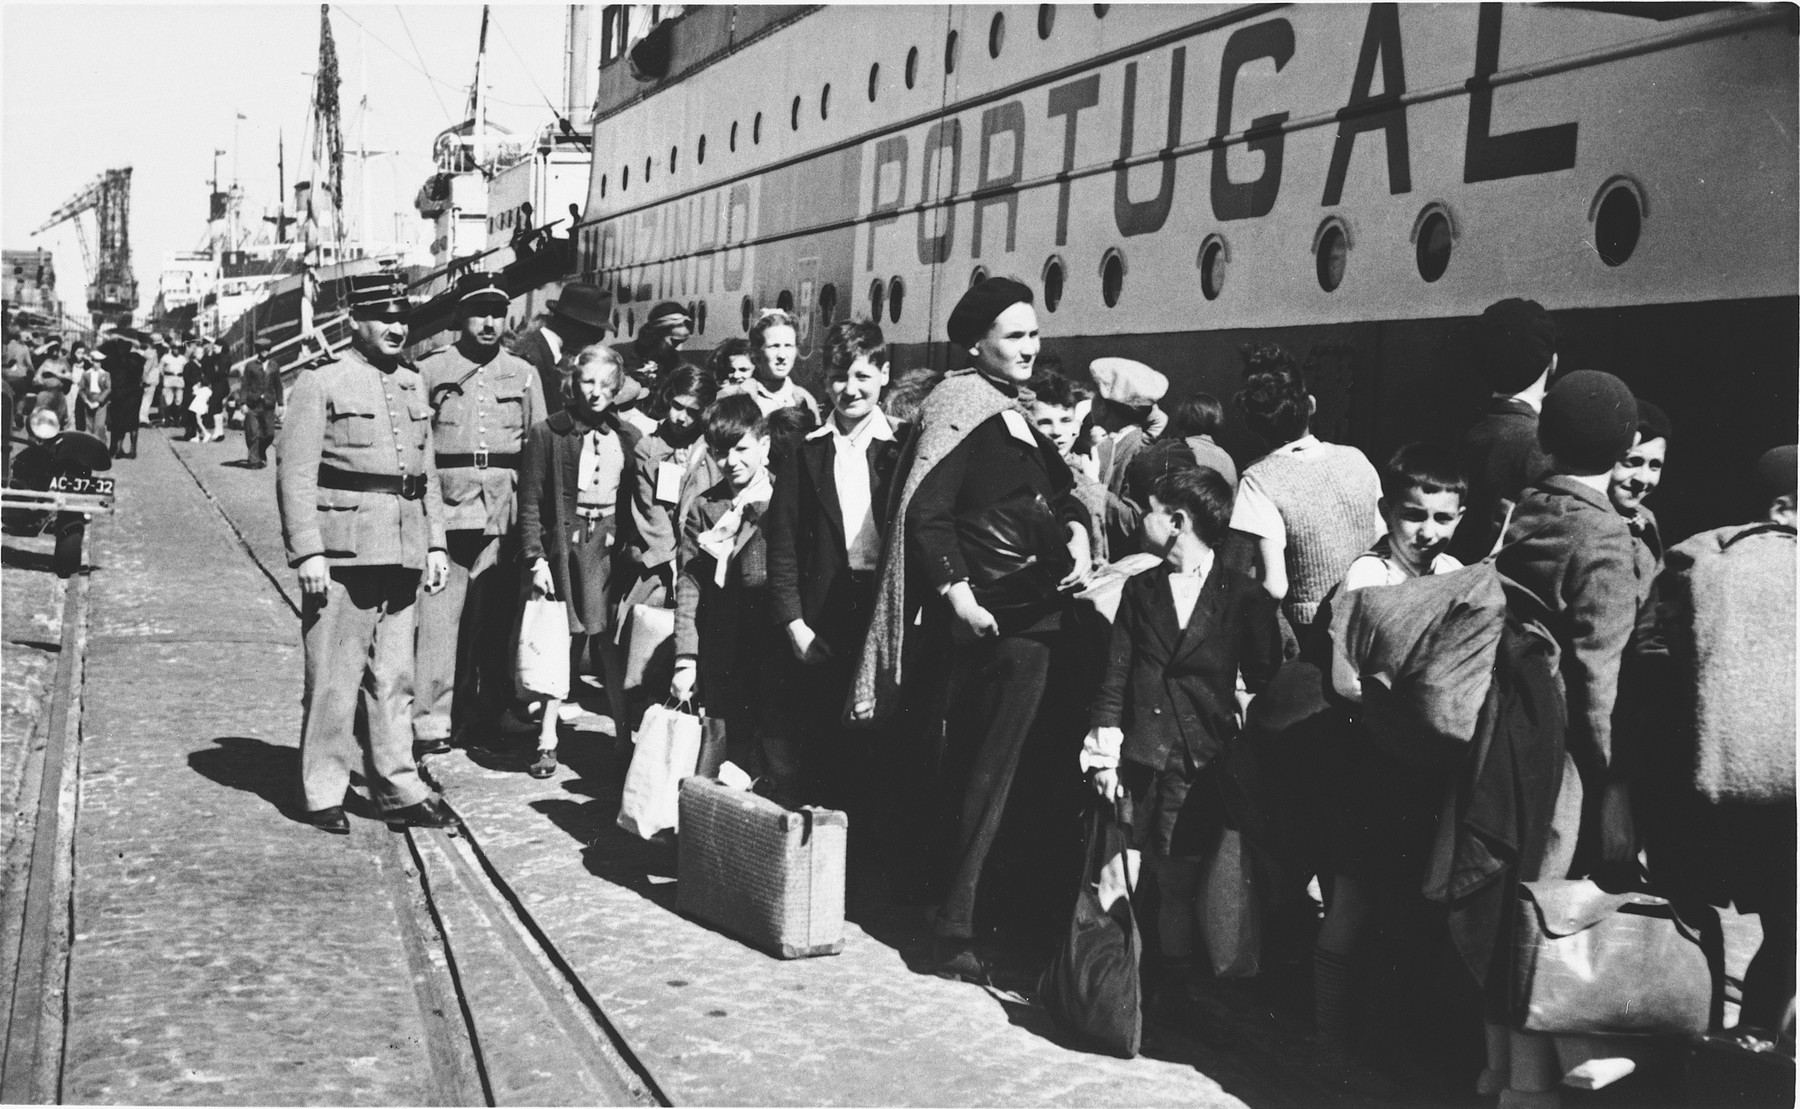 Two uniformed Portuguese policemen stand on the pier in the port of Lisbon as a group of Jewish refugee children wait in line to board the SS Mouzinho.  The young boy just to the right of center in the image, looking back over his right shoulder, is Herman Rosenfeld, born 27 April 1933 in Adelheim, Germany.  The young blonde girl standing next to the two police officers is wearing tag #25, can be identified as Lilian Warschawski (or Warszawski), born 20 April 1930 in Belgium.